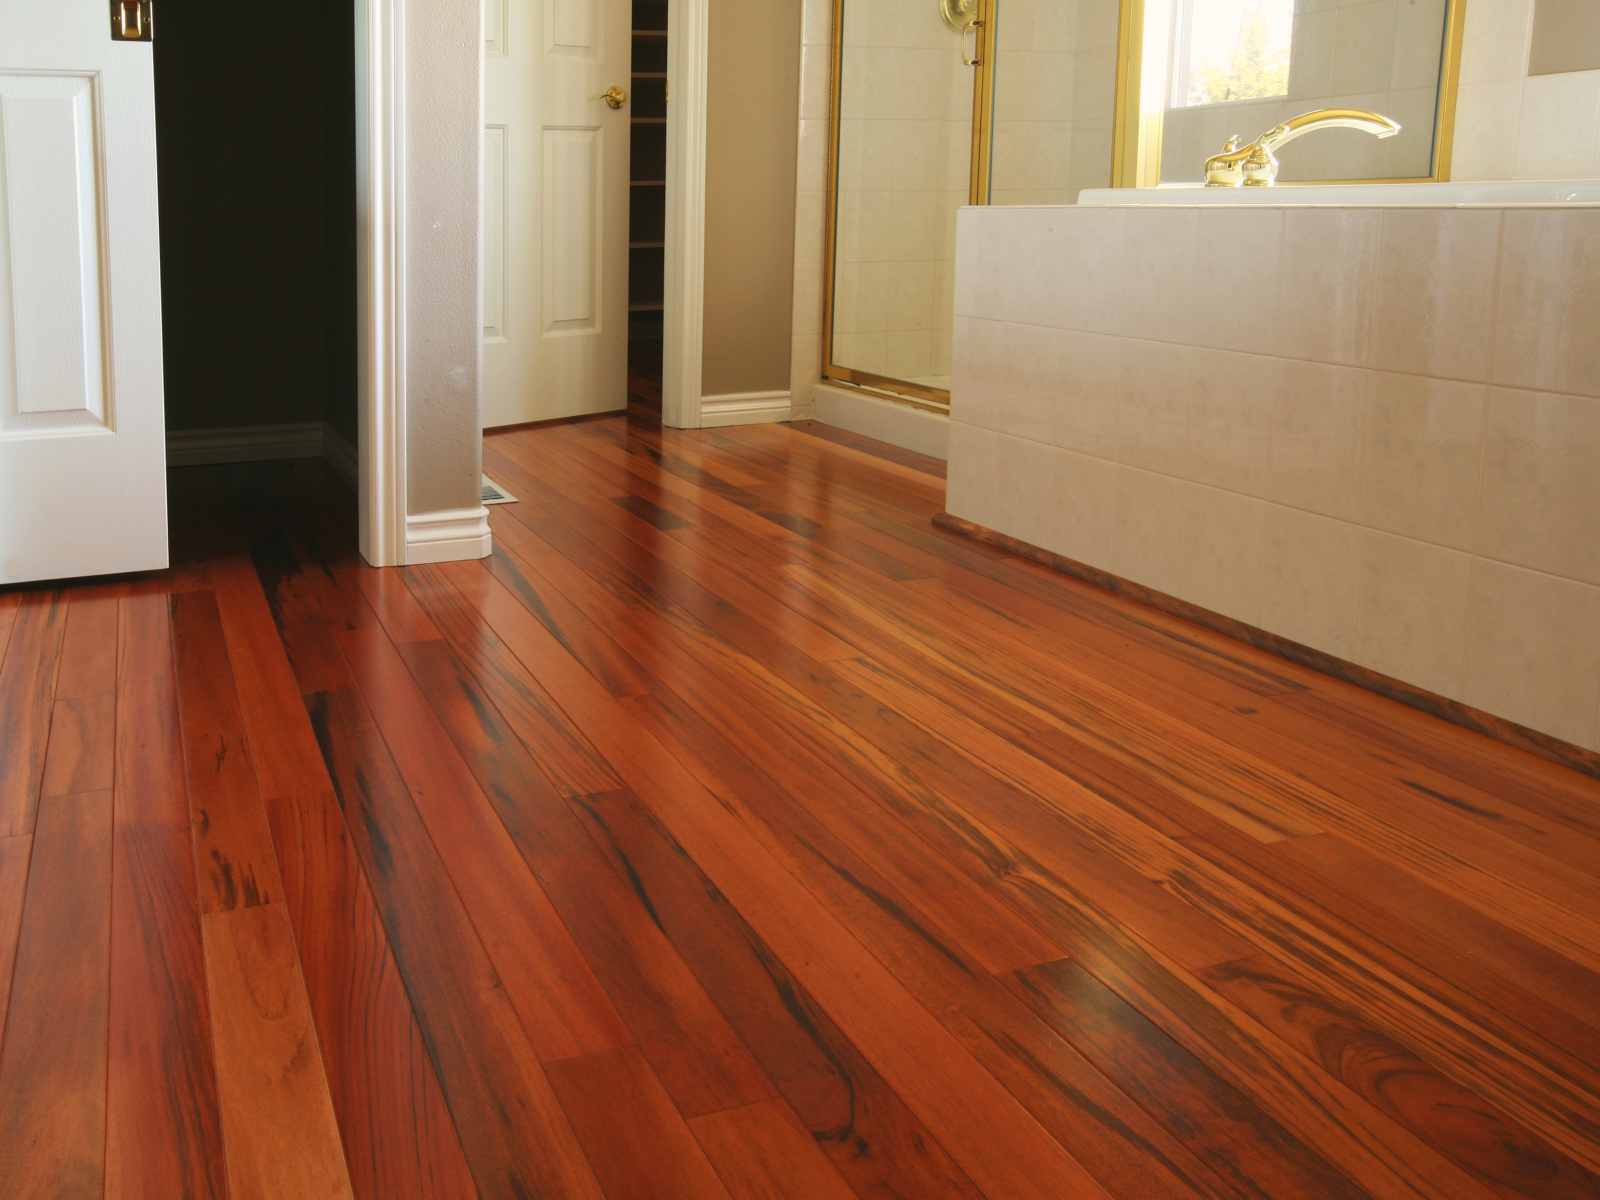 Bamboo flooring eco friendly flooring for your home for Best laminate flooring